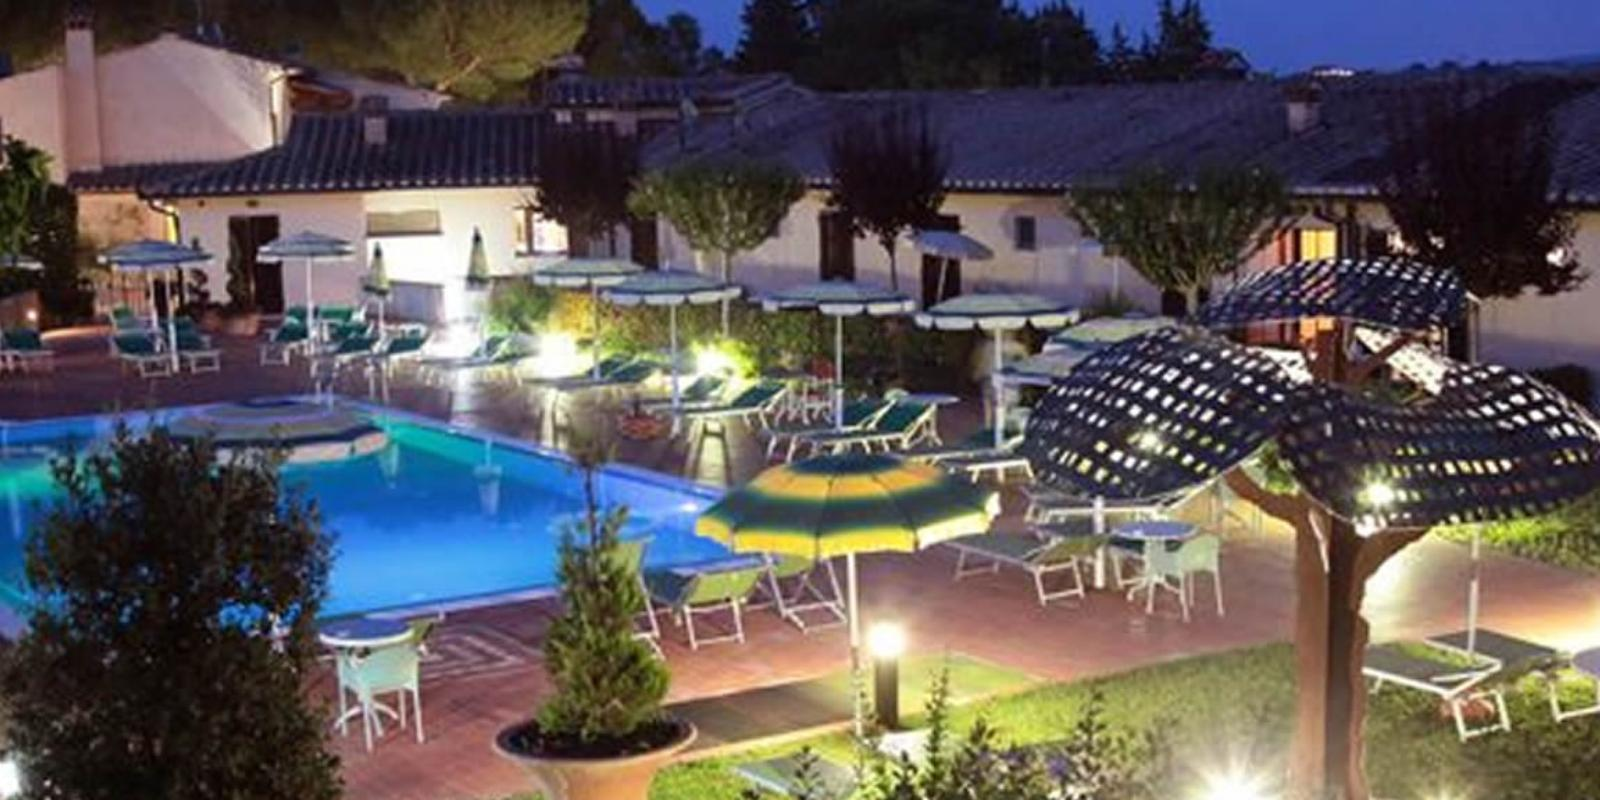 Panoramic Hotel Sovestro with swimming pool, hills and surrounding park